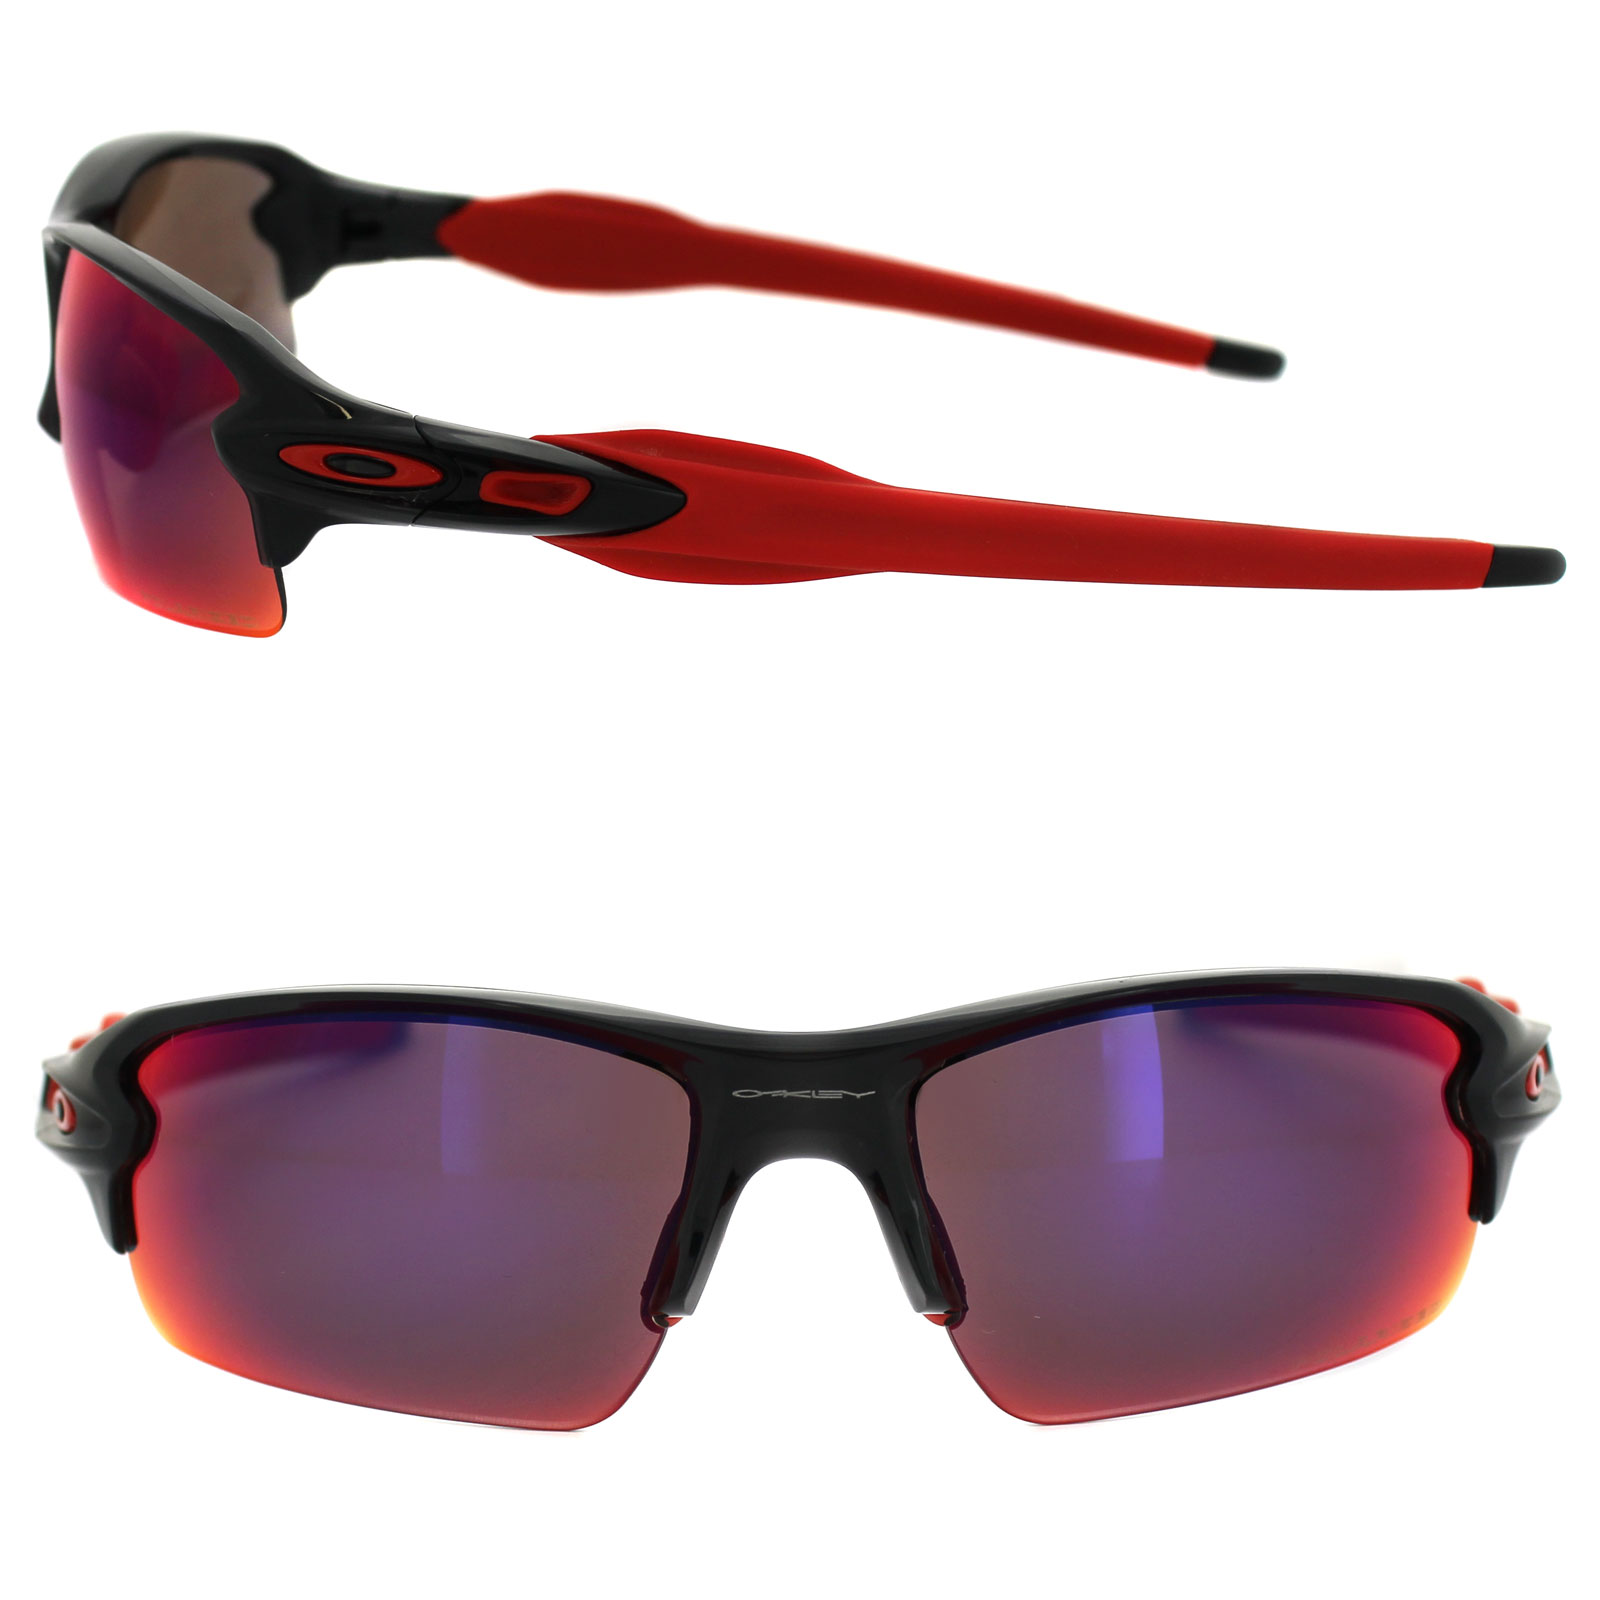 ea71210ea5b Sentinel Oakley Sunglasses Flak 2.0 OO9295-08 Black Ink OO Red Iridium  Polarized